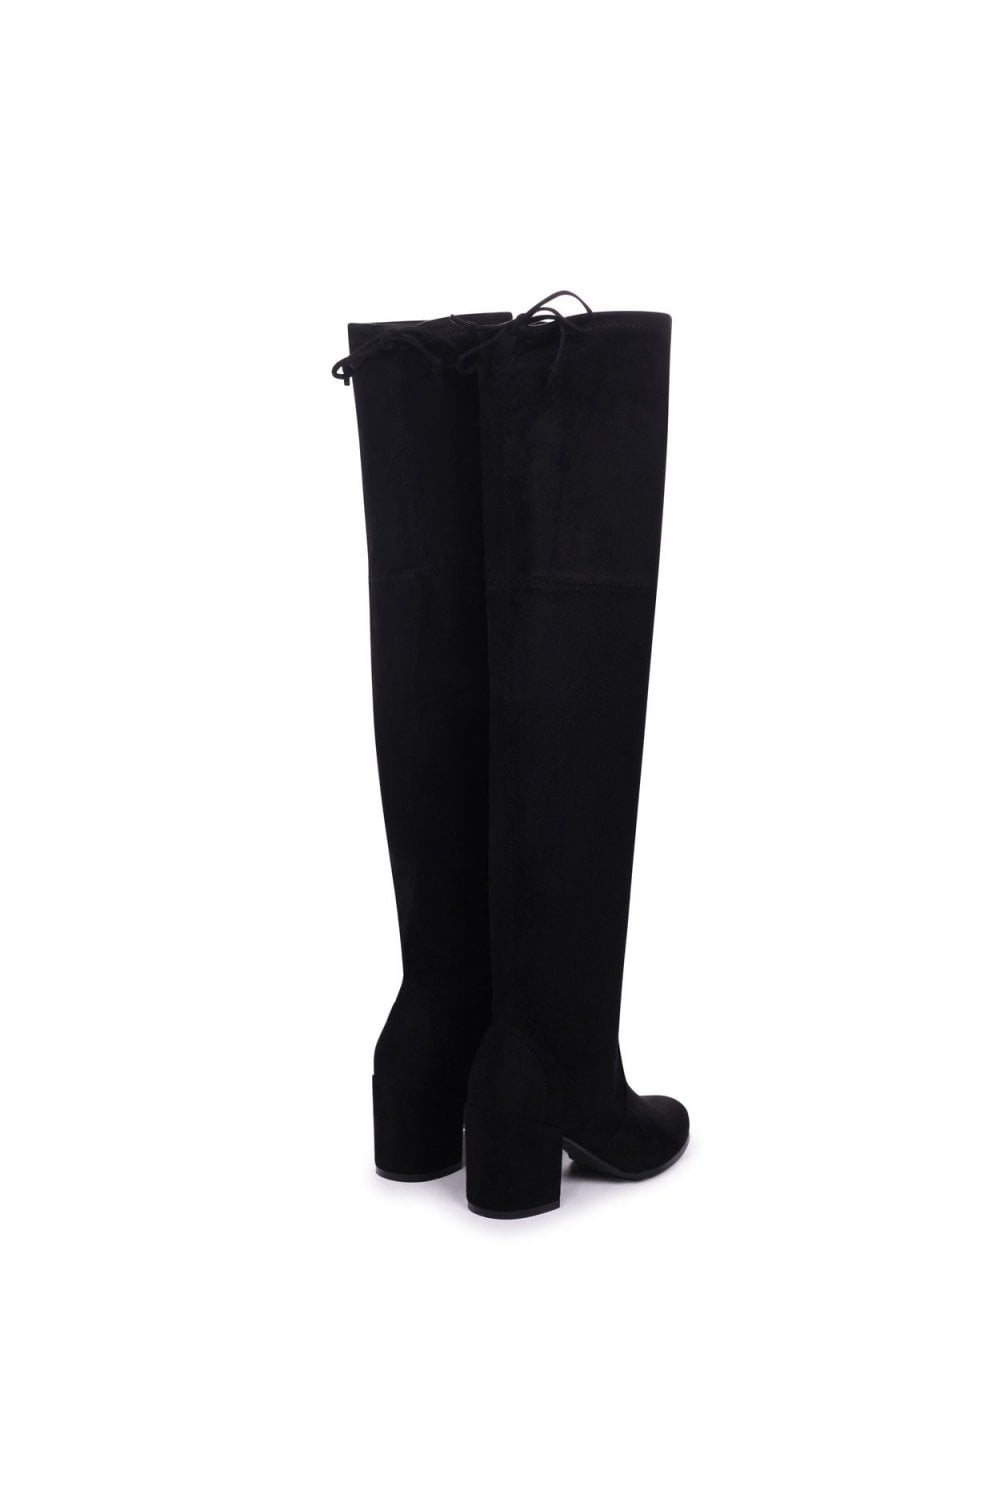 0b46f3135ec98 ... Linzi AMBER - Black Suede Block Heeled Over The Knee Boot with Tie Up  Back ...